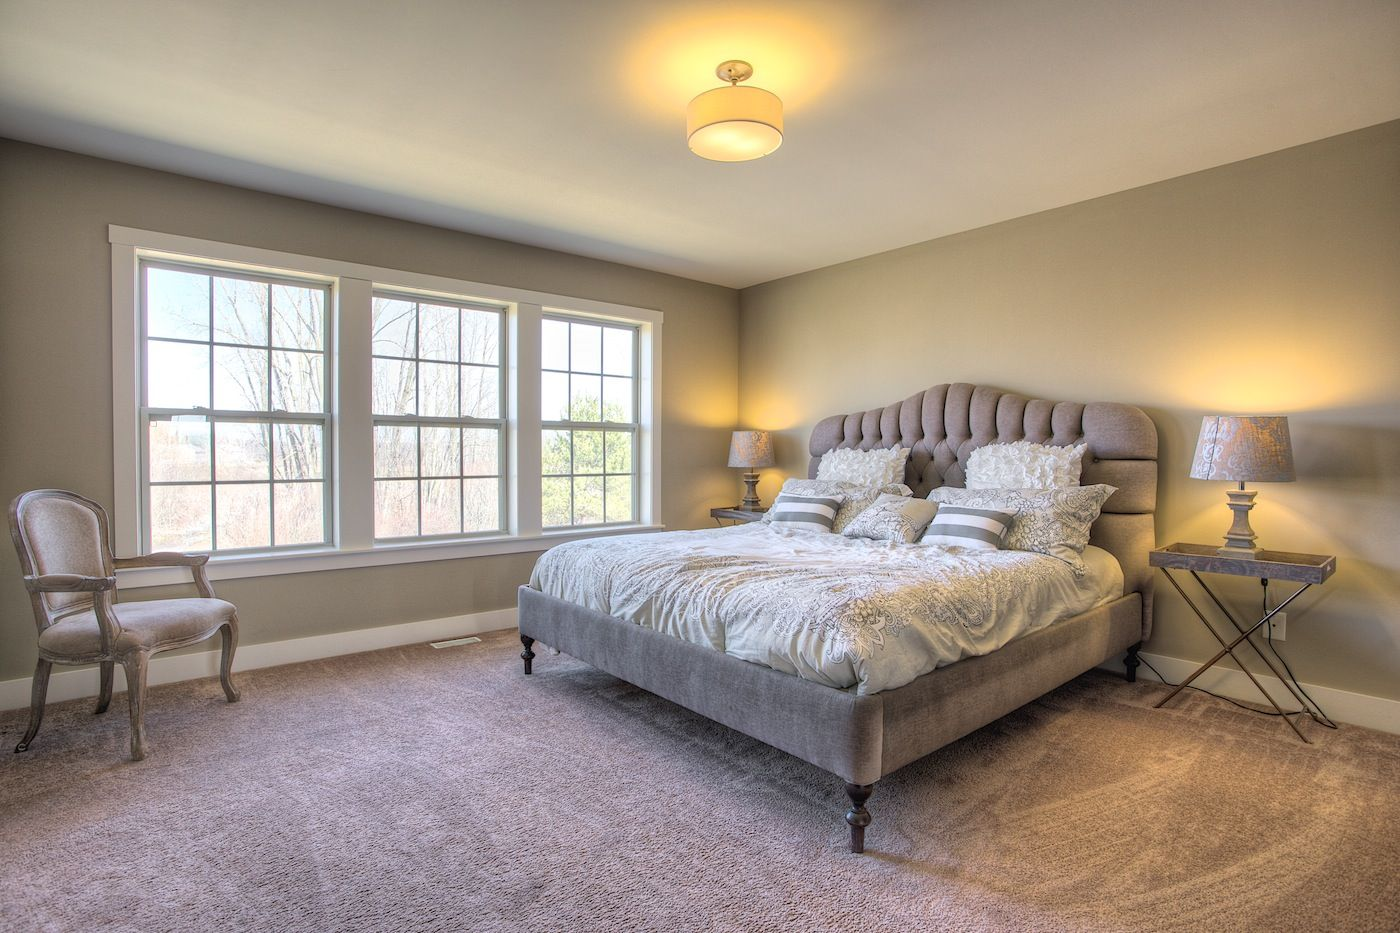 Bedroom featured in the Traditions 2800 V8.0b By Allen Edwin Homes in Ann Arbor, MI